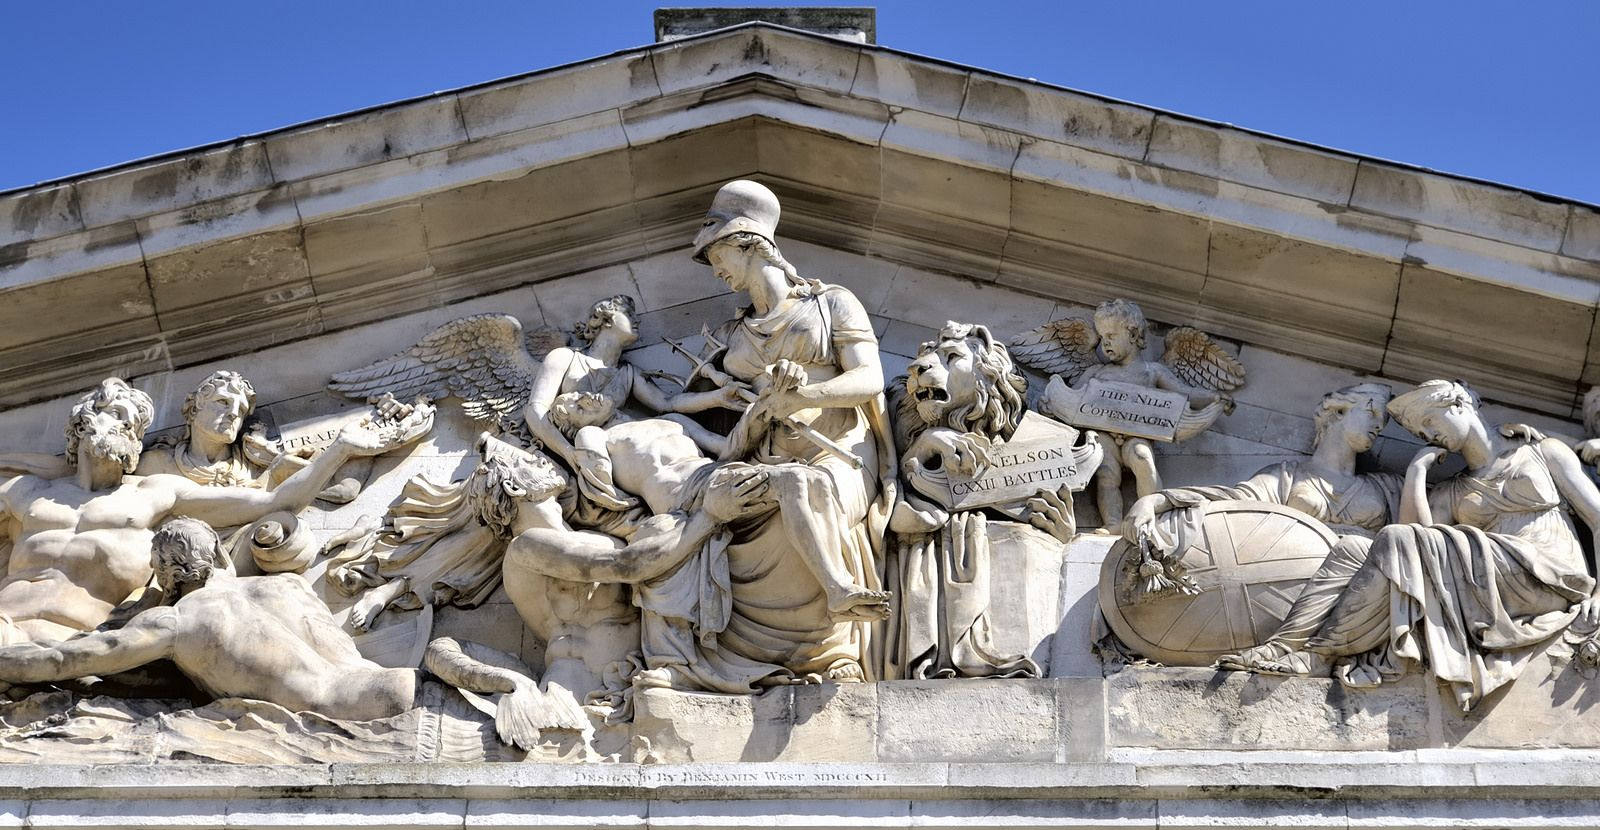 Seventy-two battles - Nelson Pediment, Coade stone, Benjamin West, 1812 - Old Royal Naval College, Greenwich, London | Flickr - Photo Sharing!